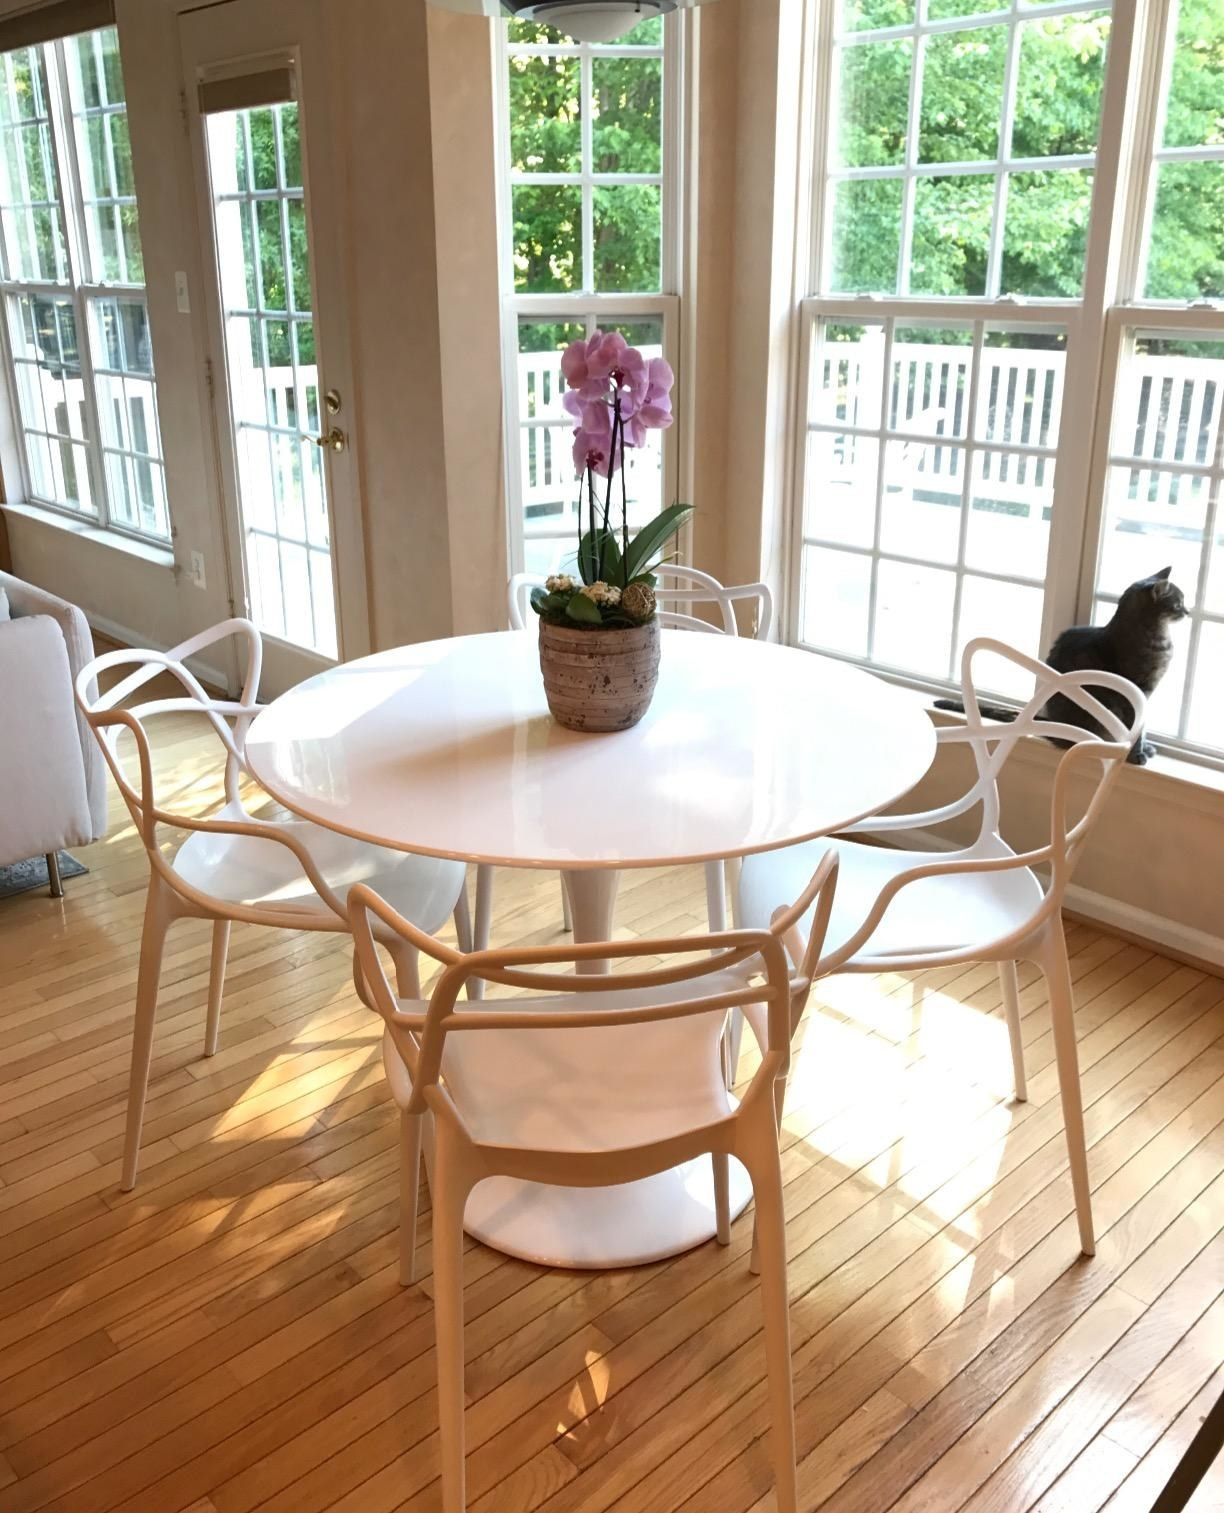 Reviewer pic of the round-top table in white with four chairs around it.